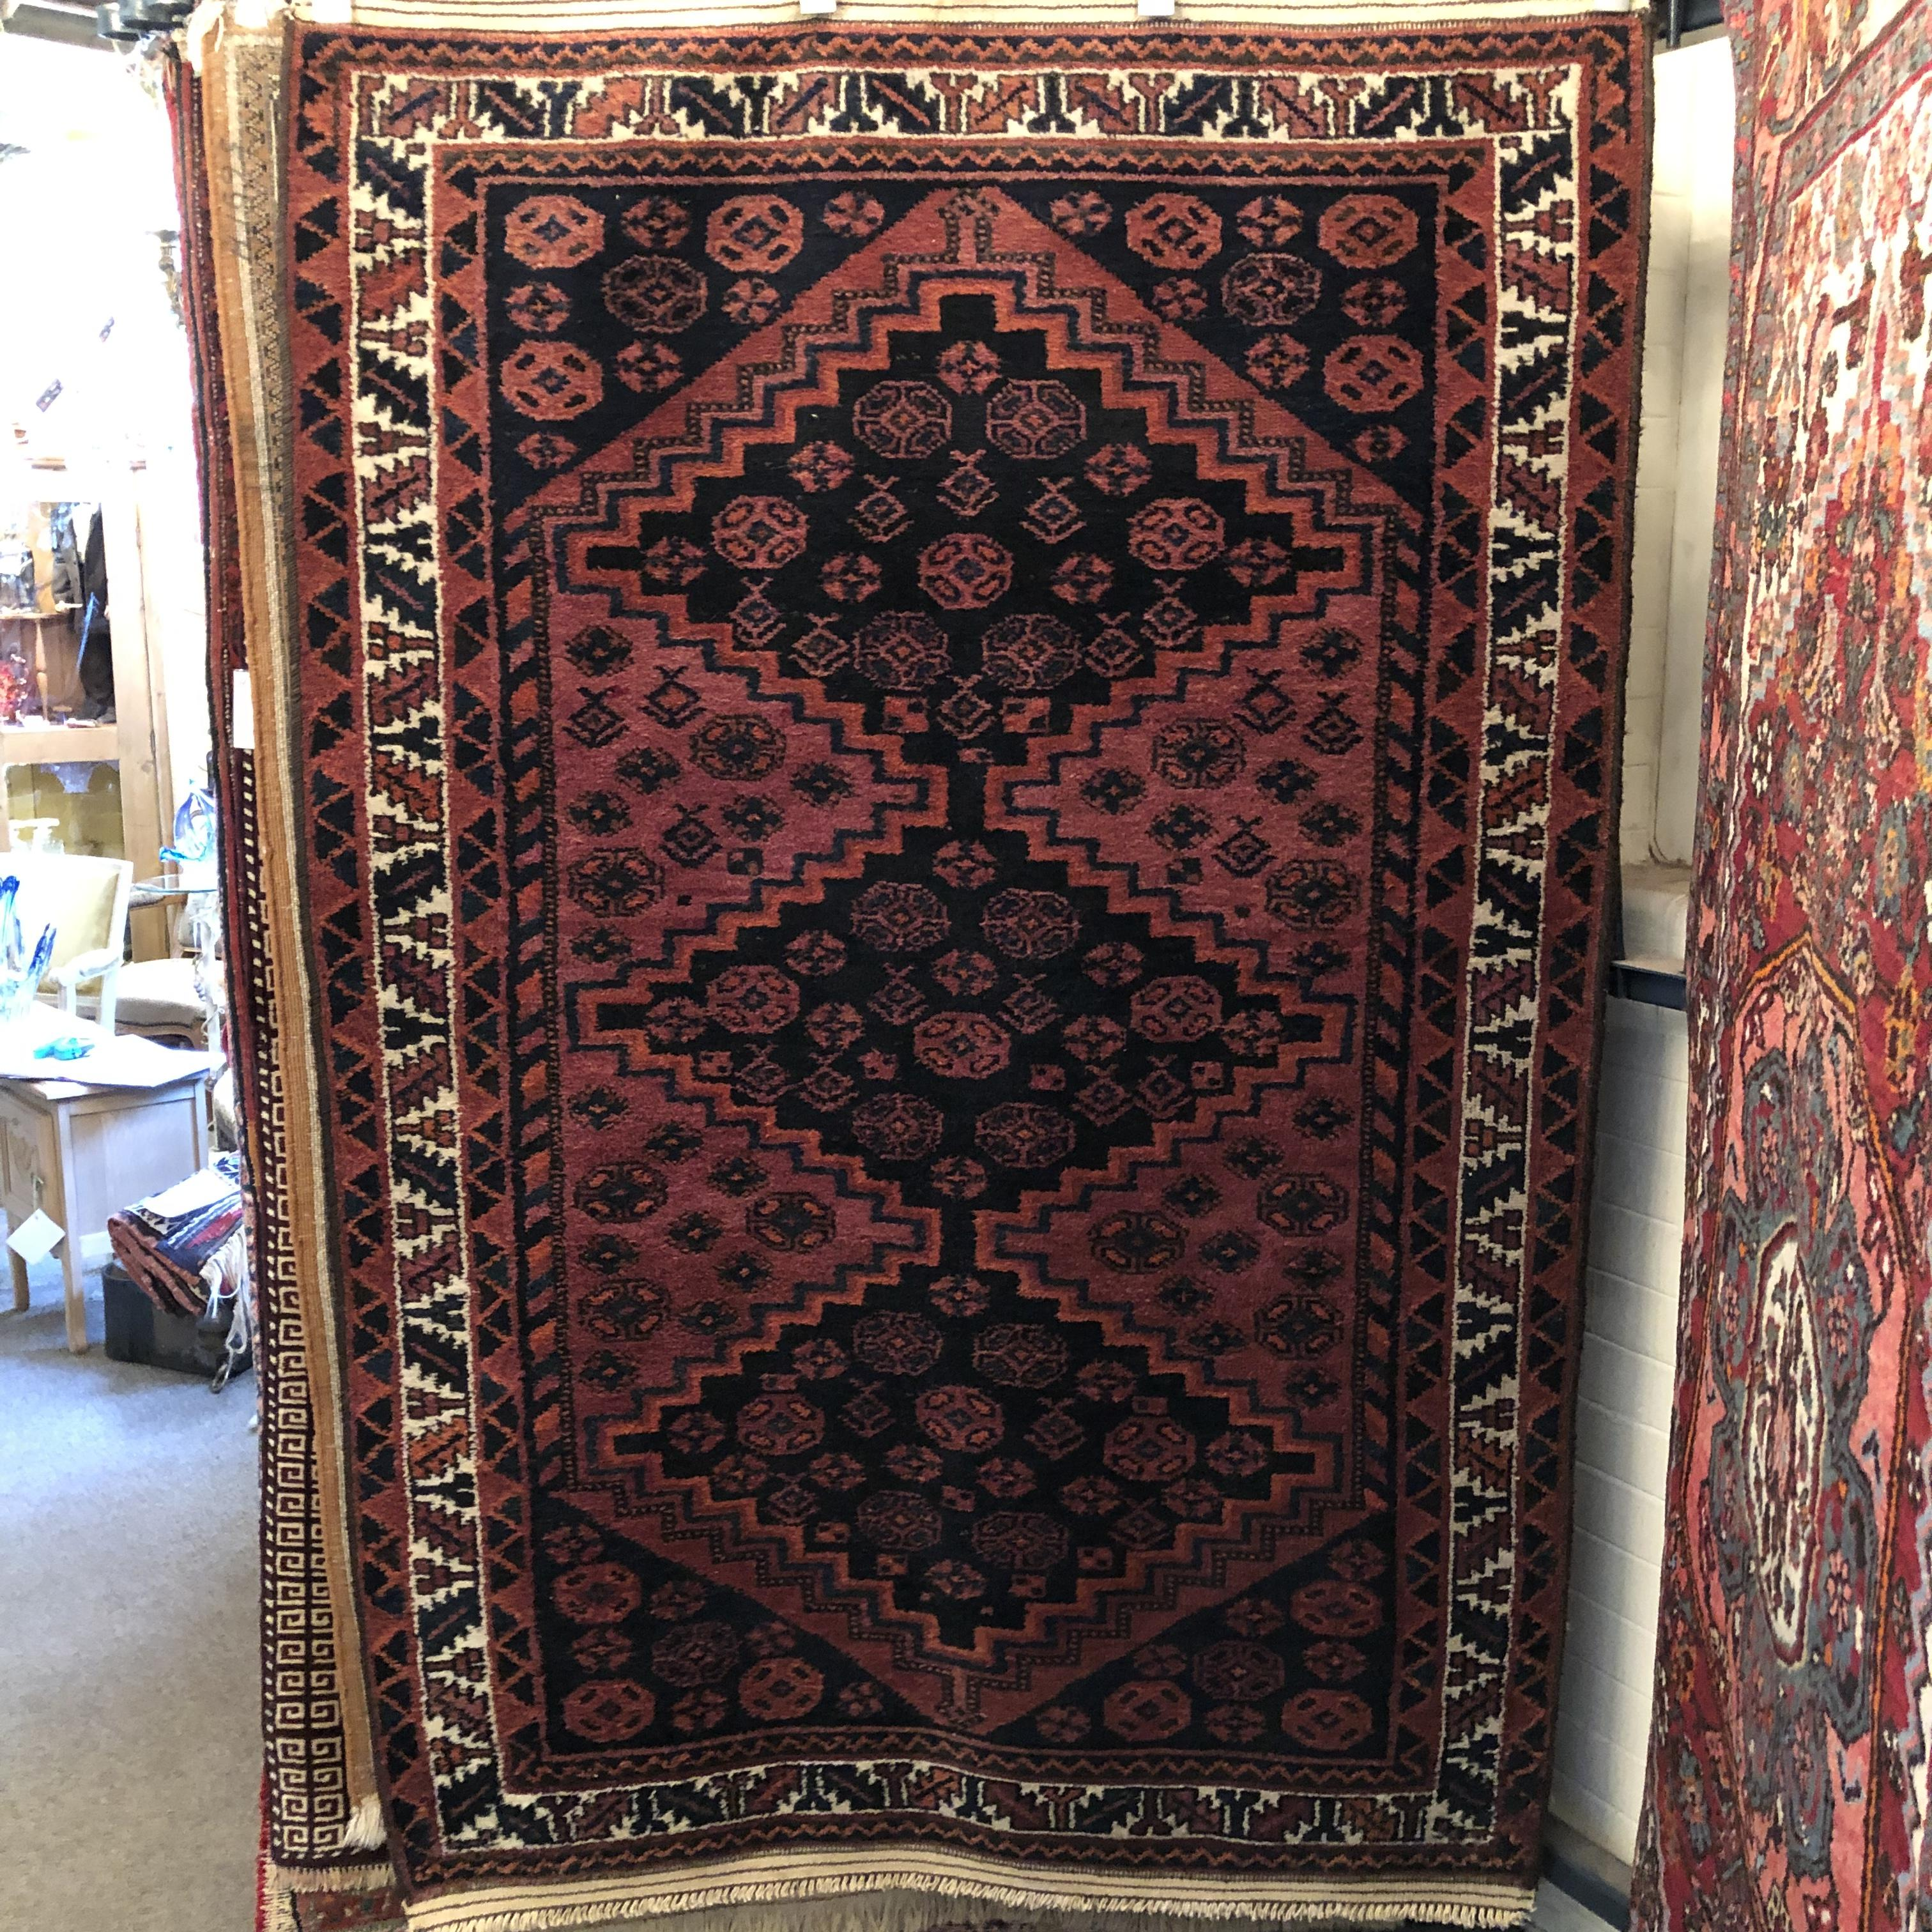 Rugs Tapestries & Textiles